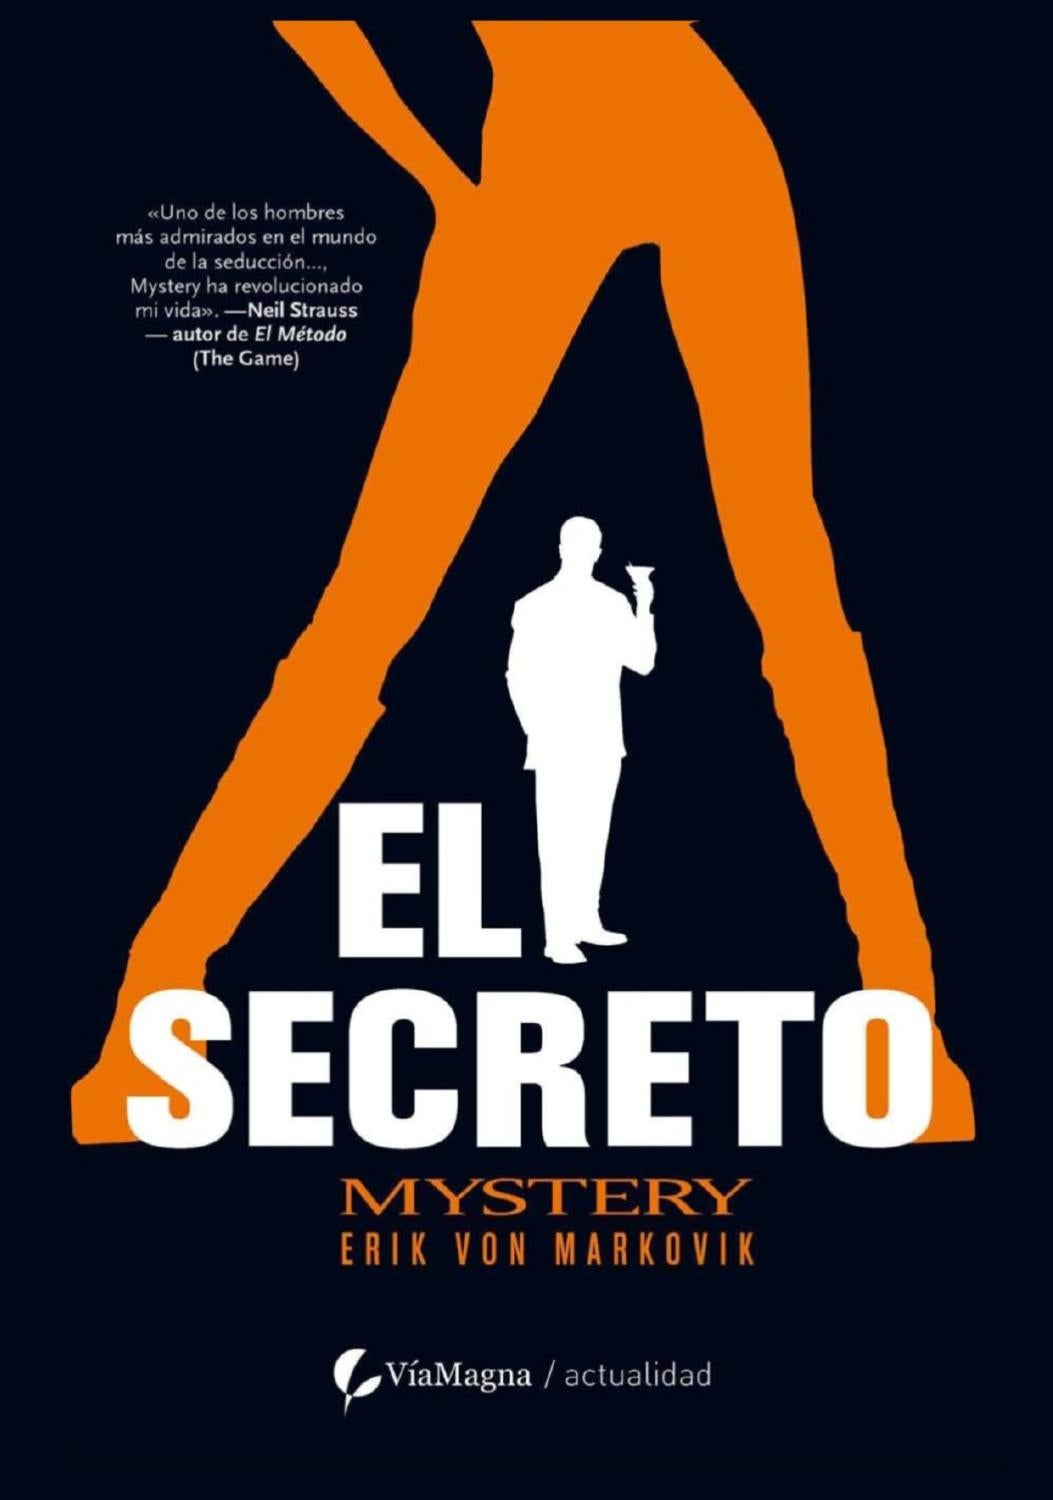 Libro De Seduccion El Secreto De Mystery By Bl4ck Eye Issuu